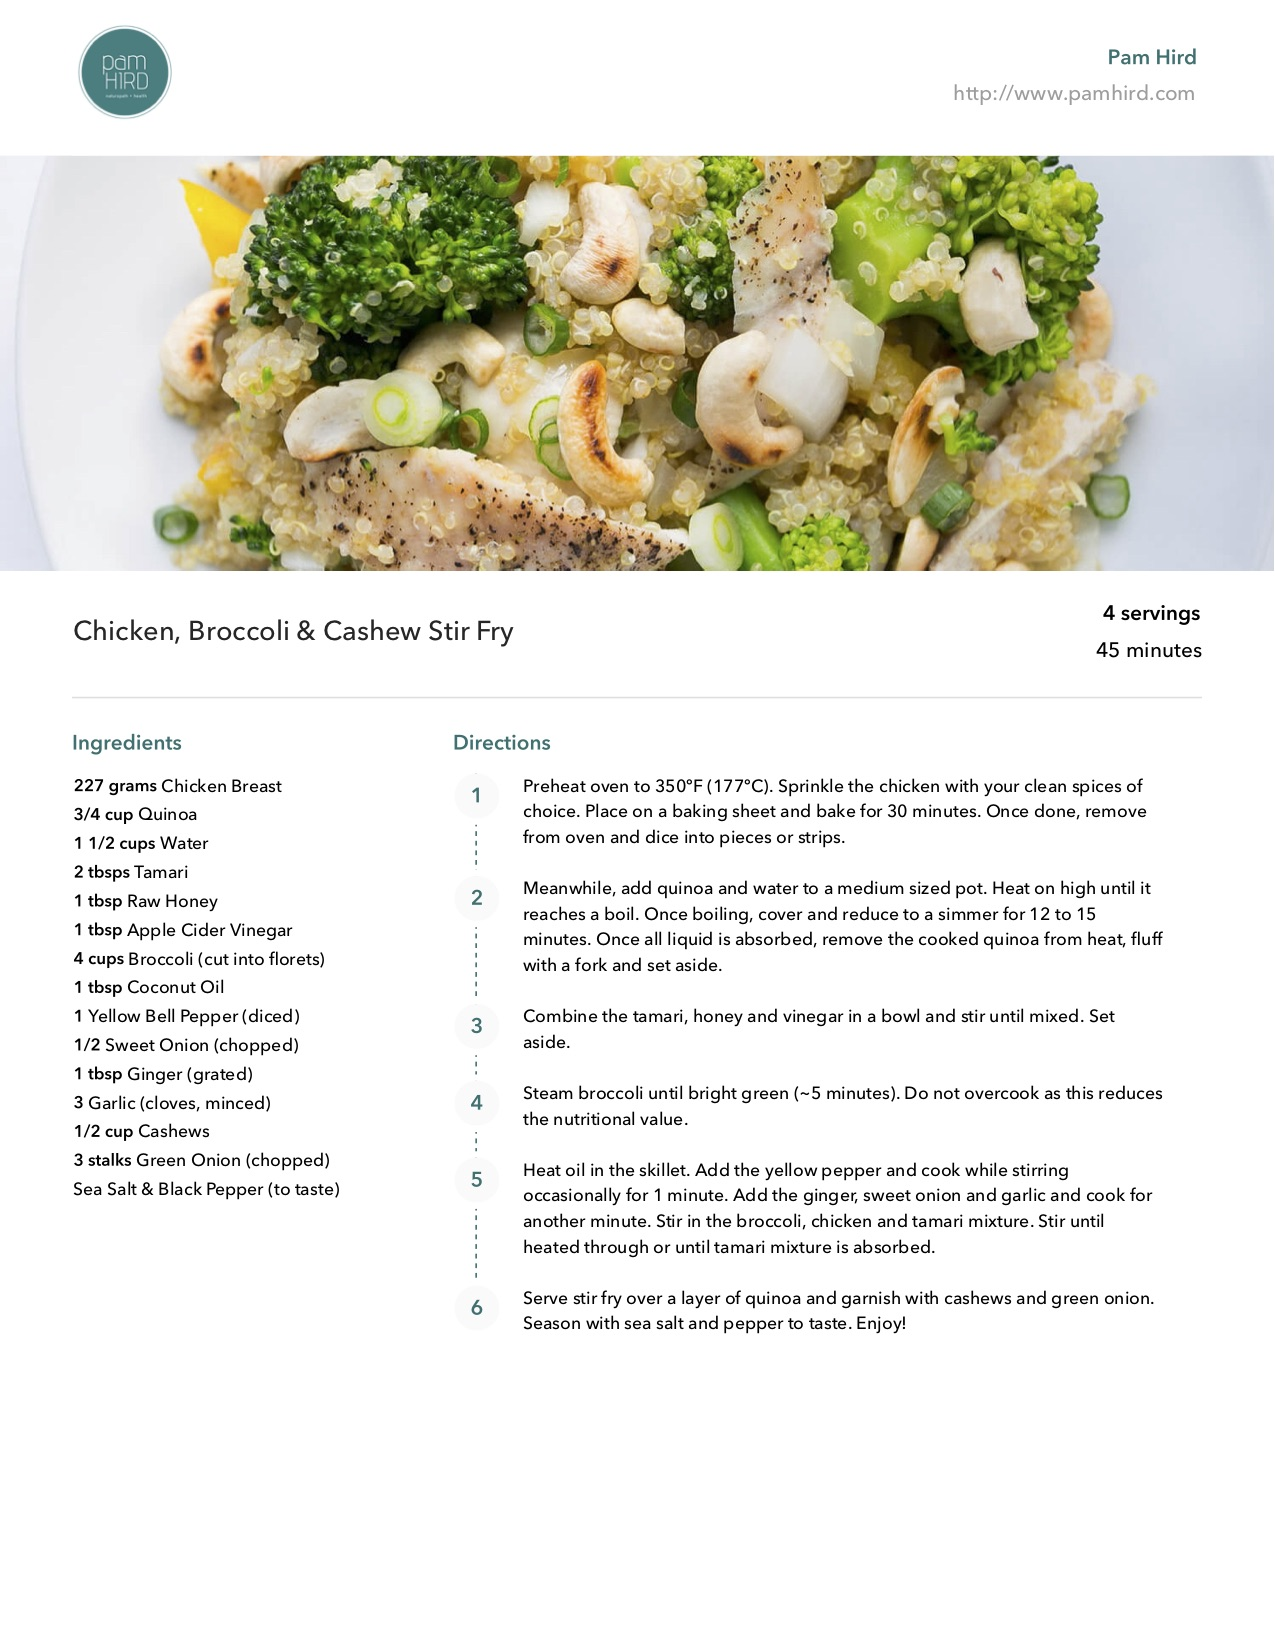 chicken-broccoli-cashew-stir-fry.jpg